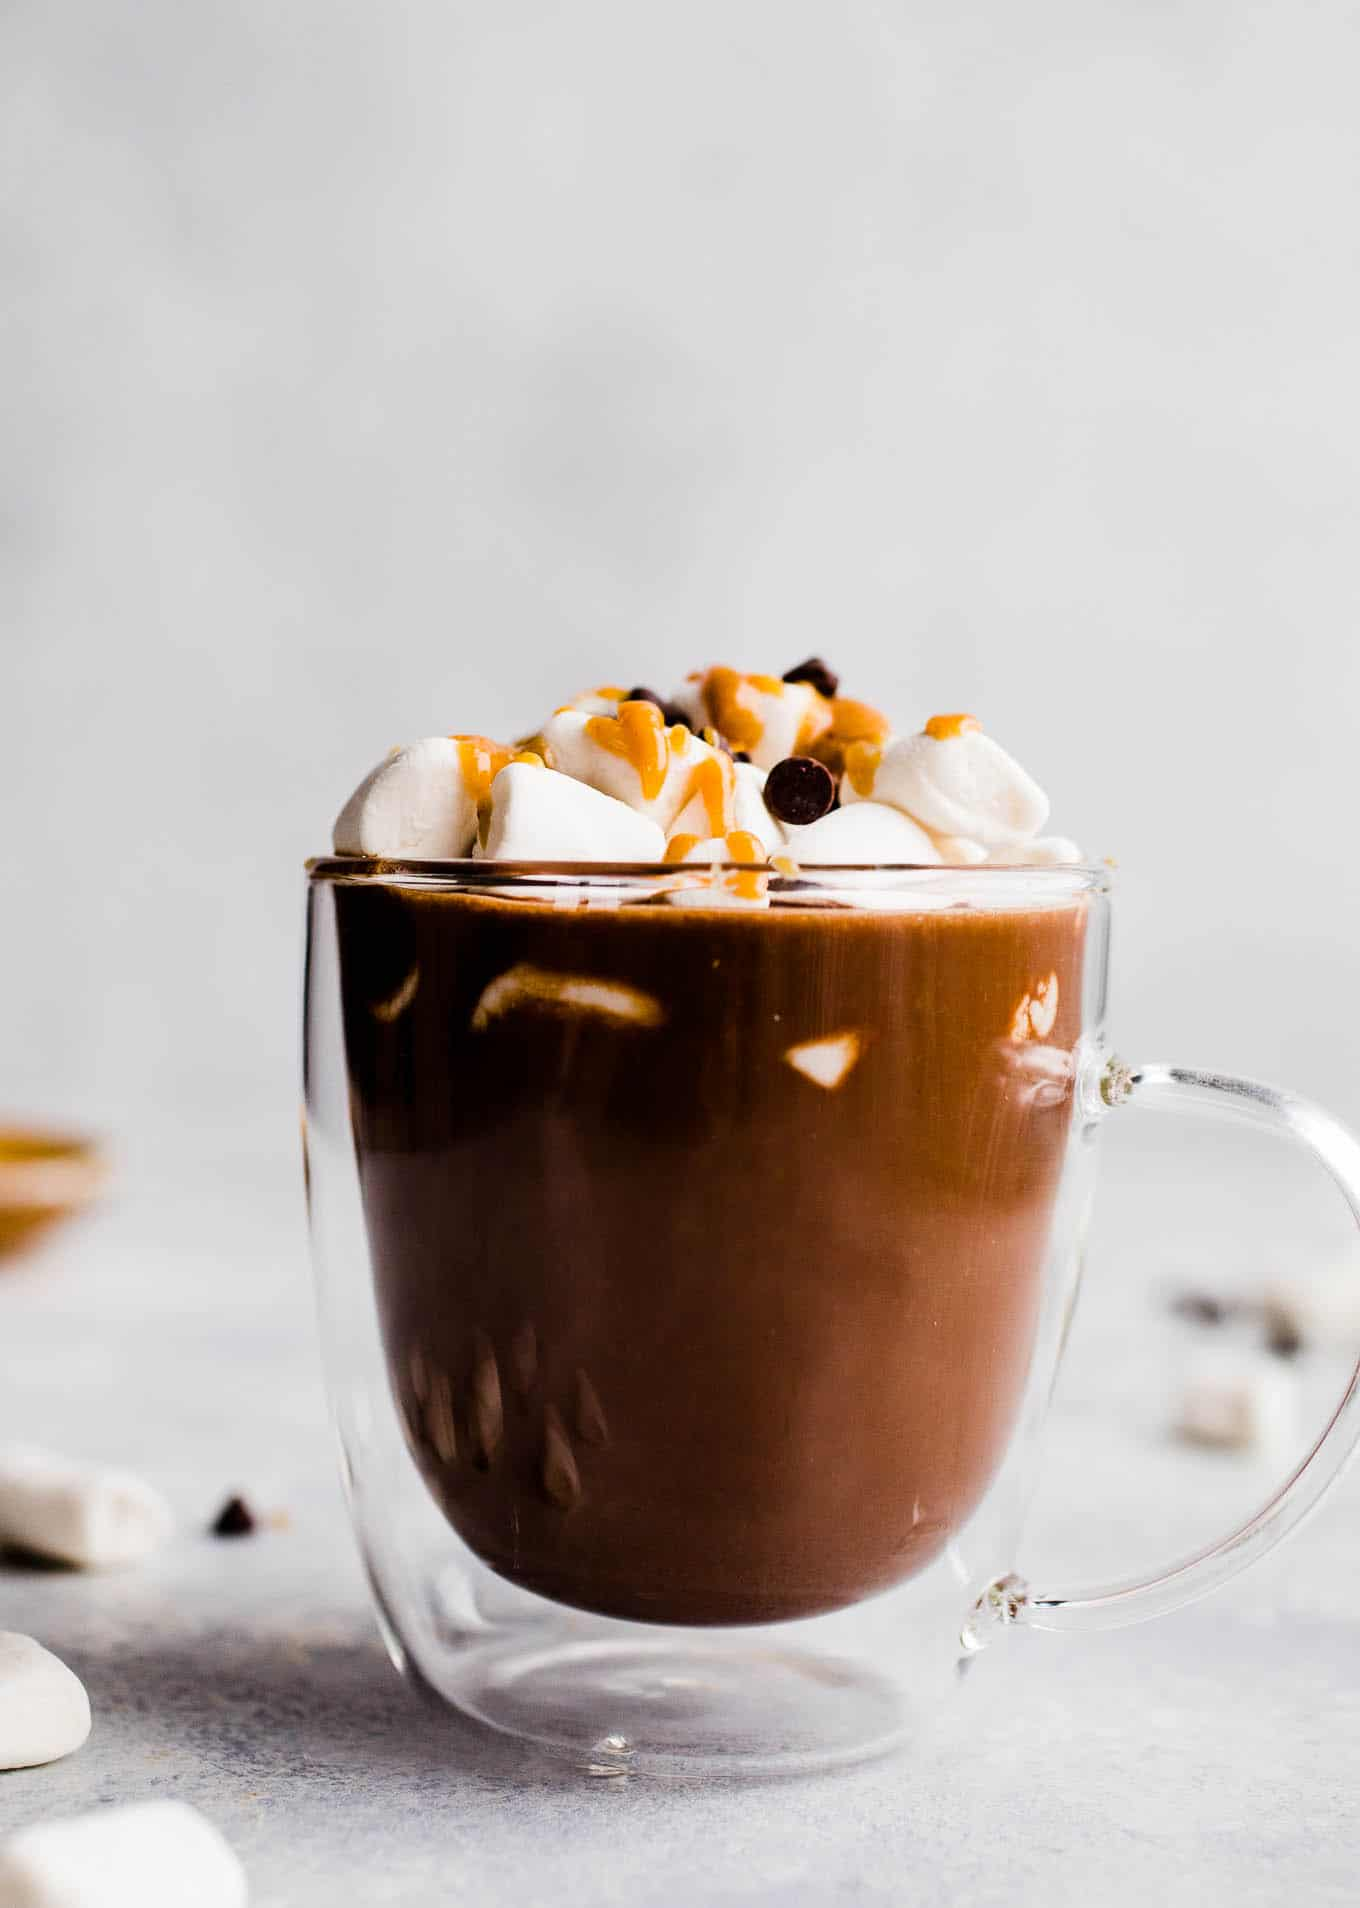 peanut butter hot chocolate in a glass mug